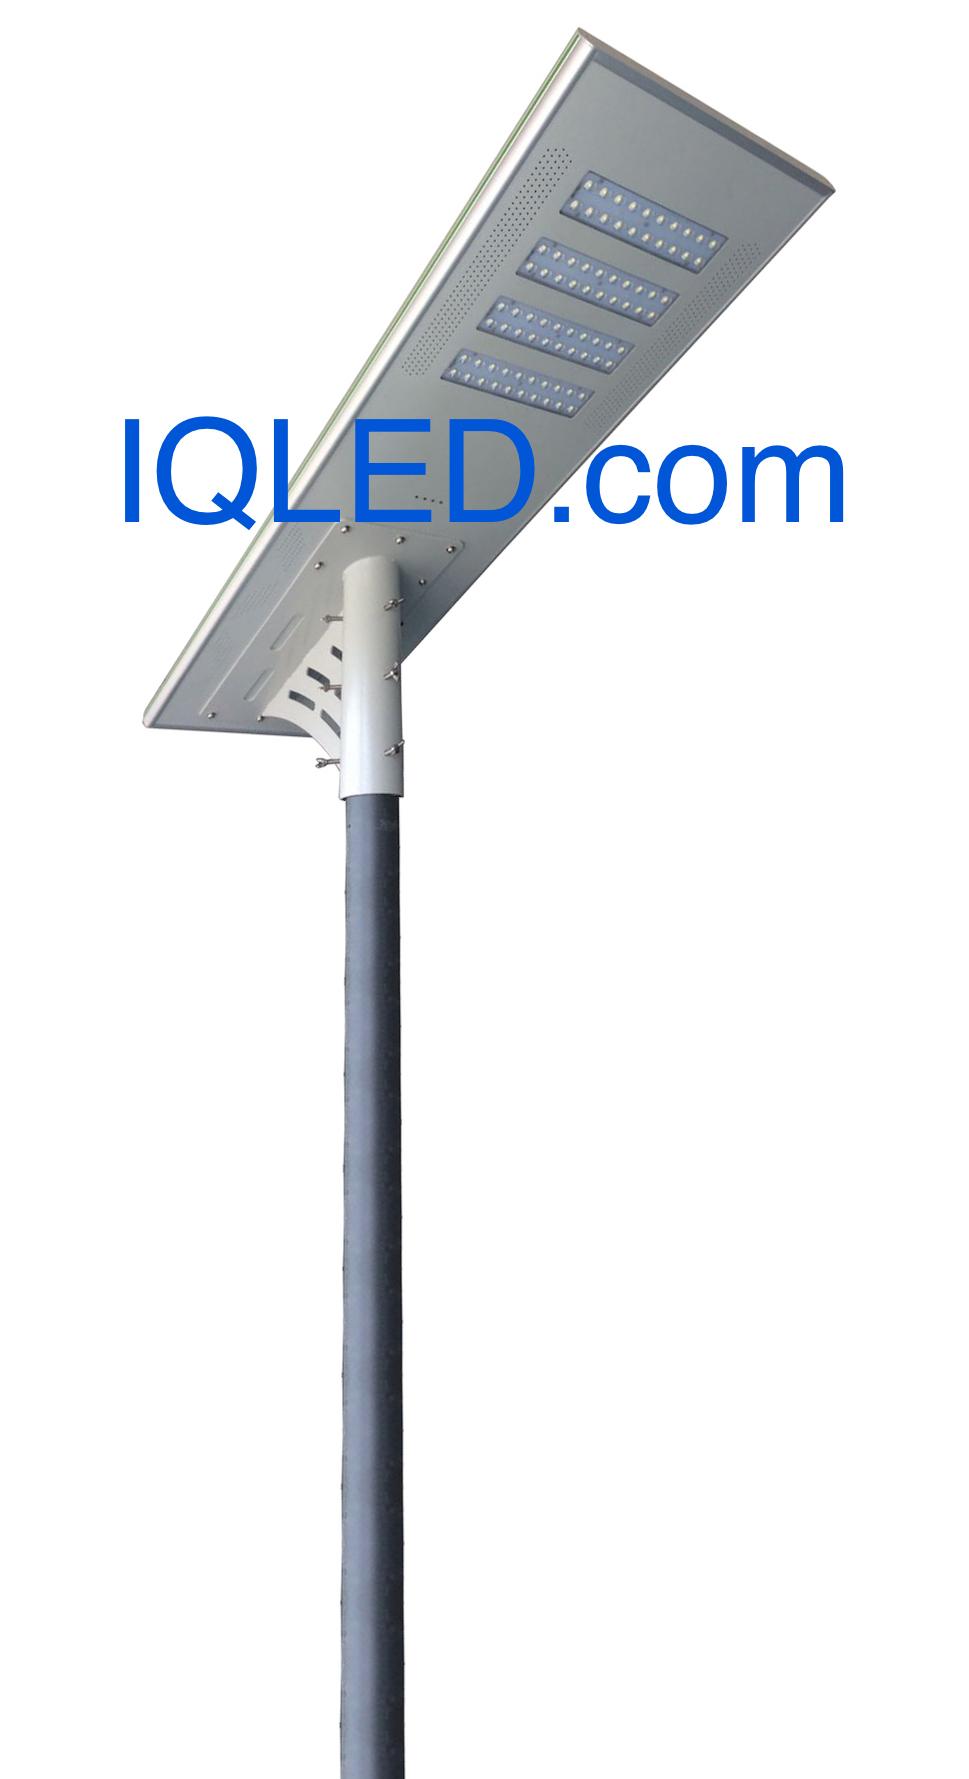 solar parking lot light, solar parking lot light with cctv ip camera, solar powered street & parking lot light, commercial solar powered led parking lot lighting systems.